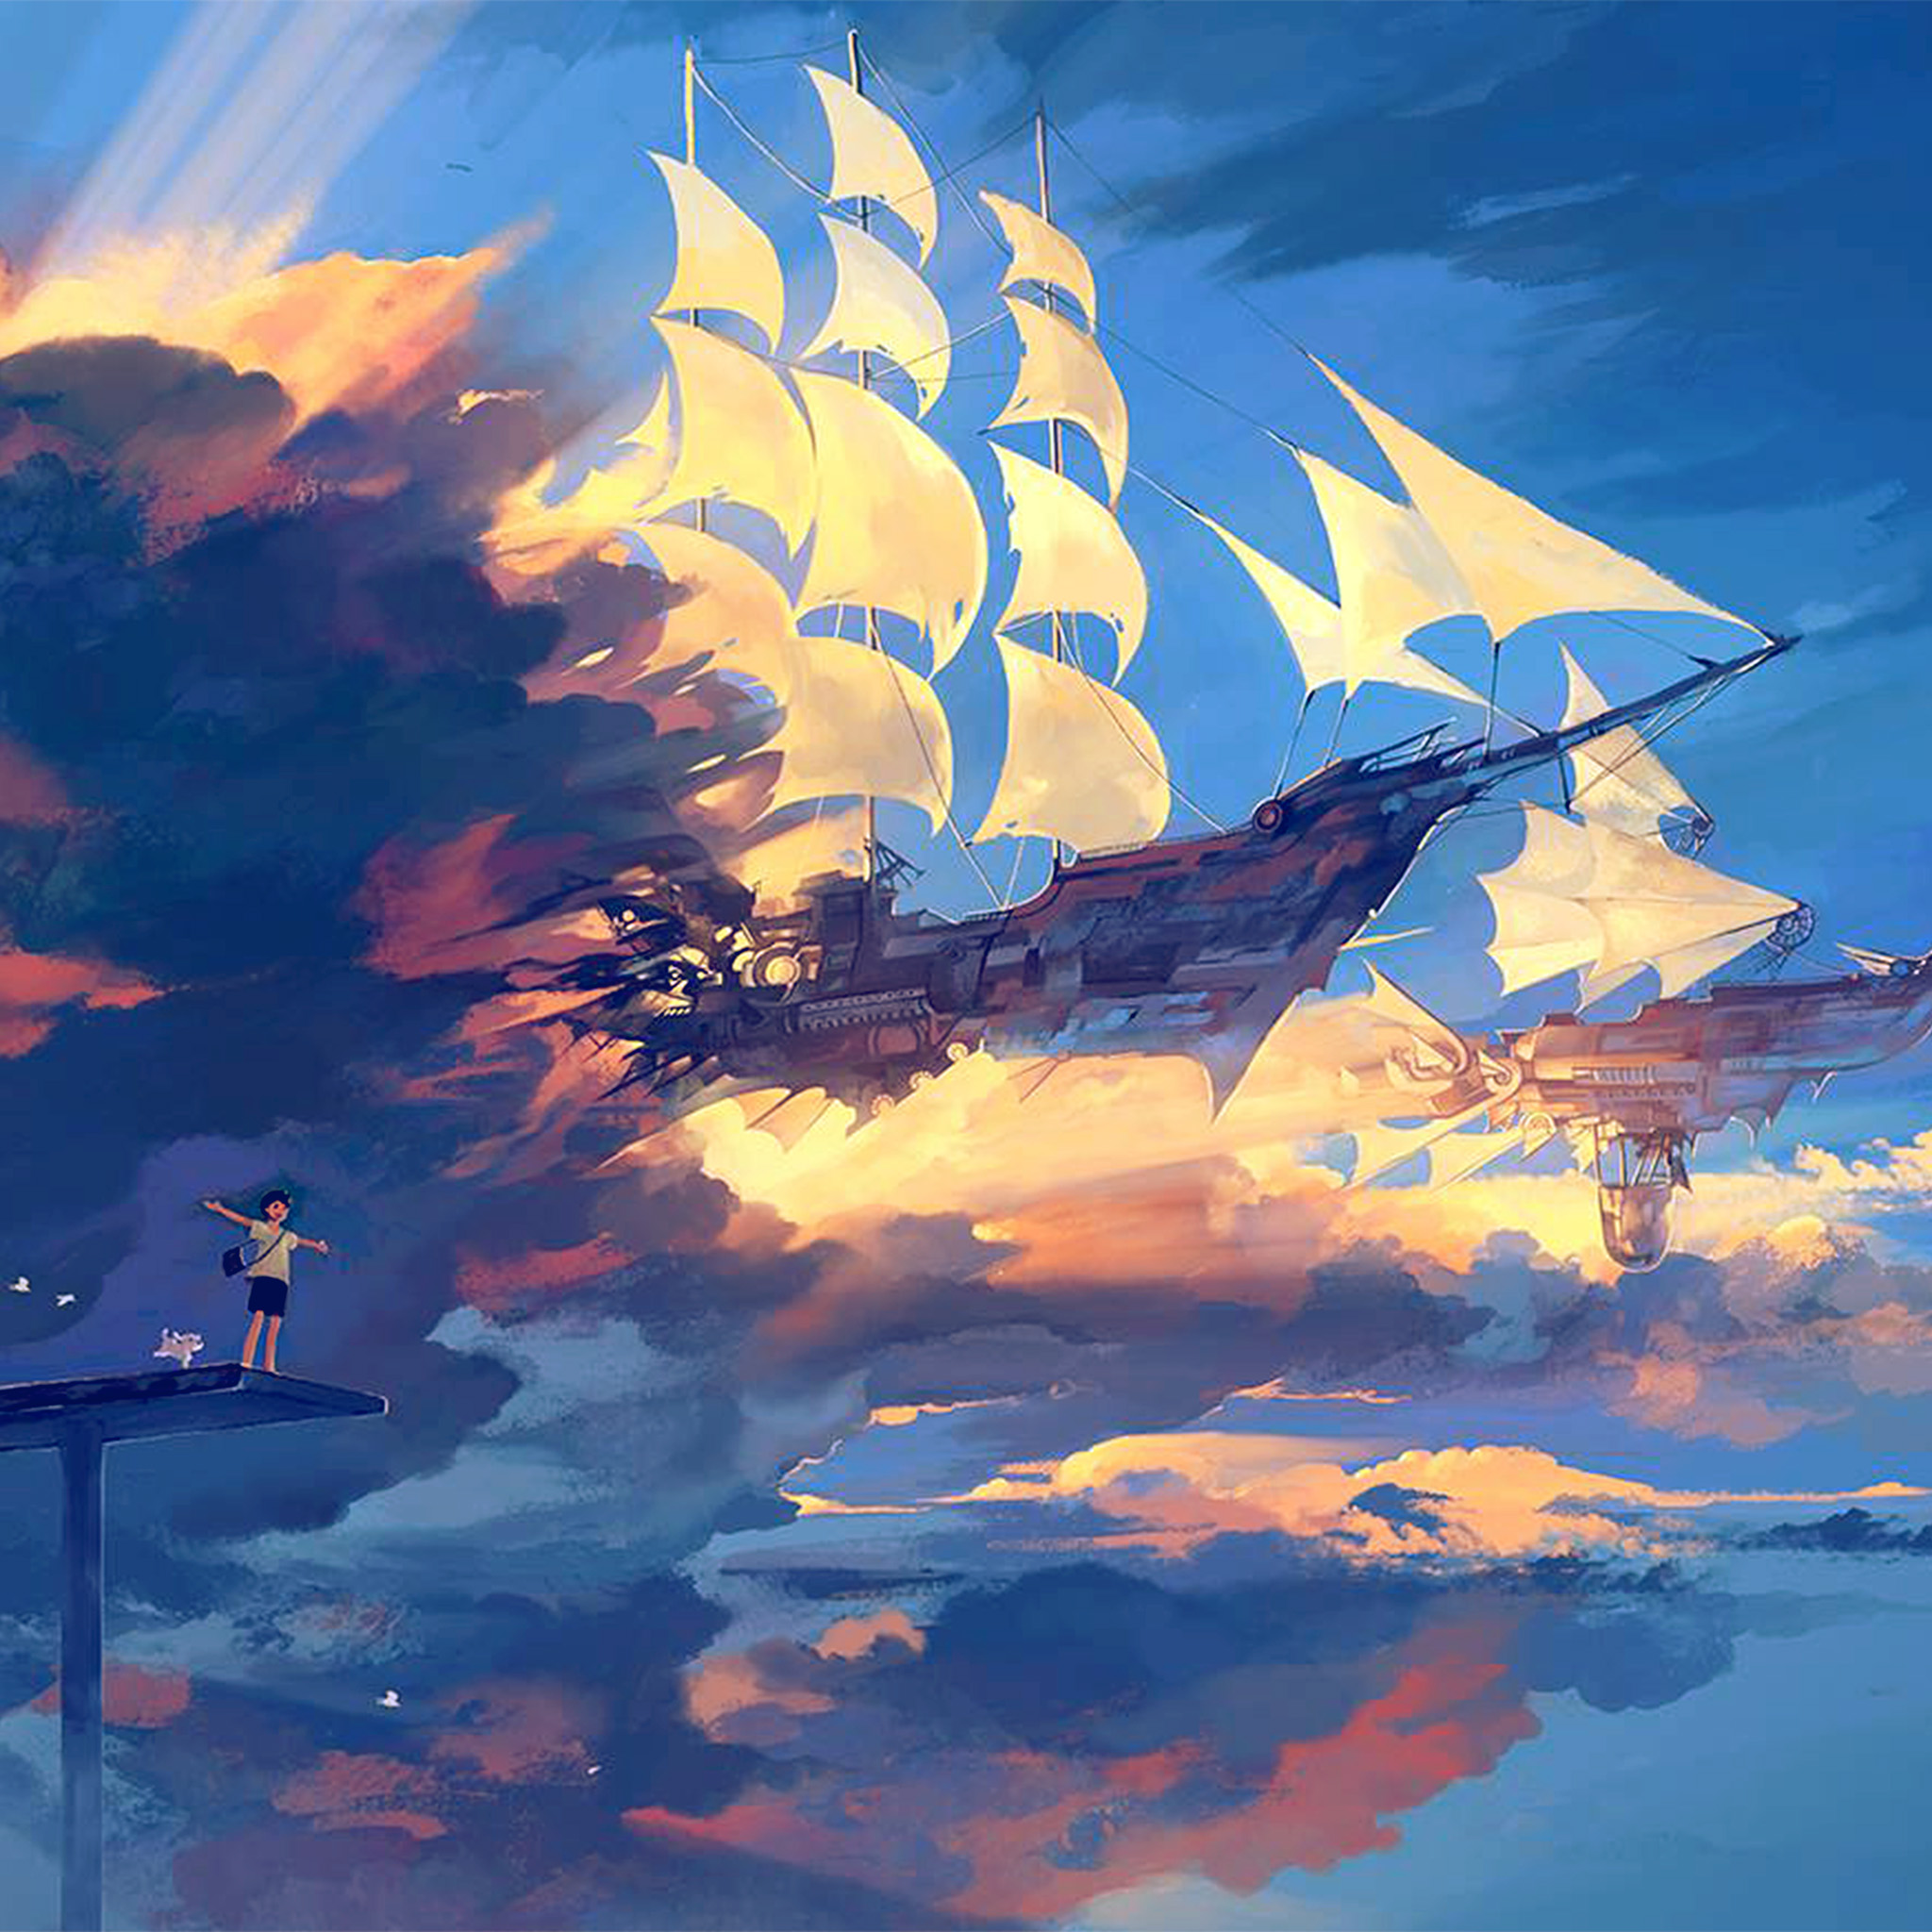 1080p Pretty Anime Girl Wallpaper Az68 Fly Ship Anime Illustration Art Blue Wallpaper